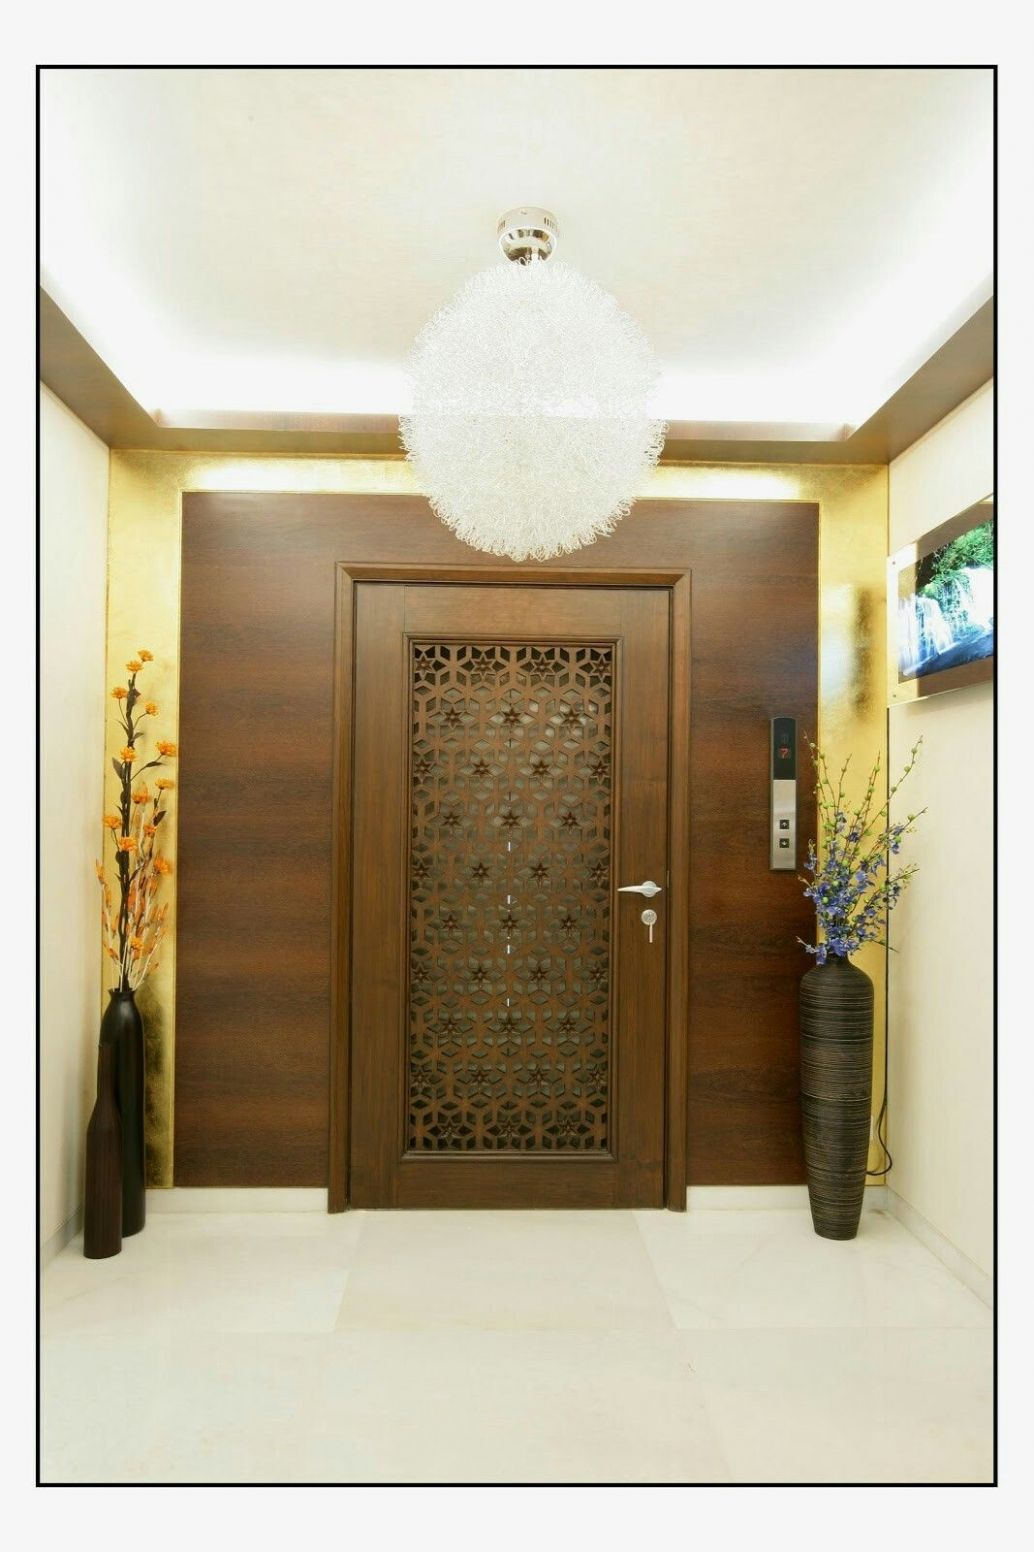 Pin by Sanjay Borda on Sanju | Door design modern, Room door ..